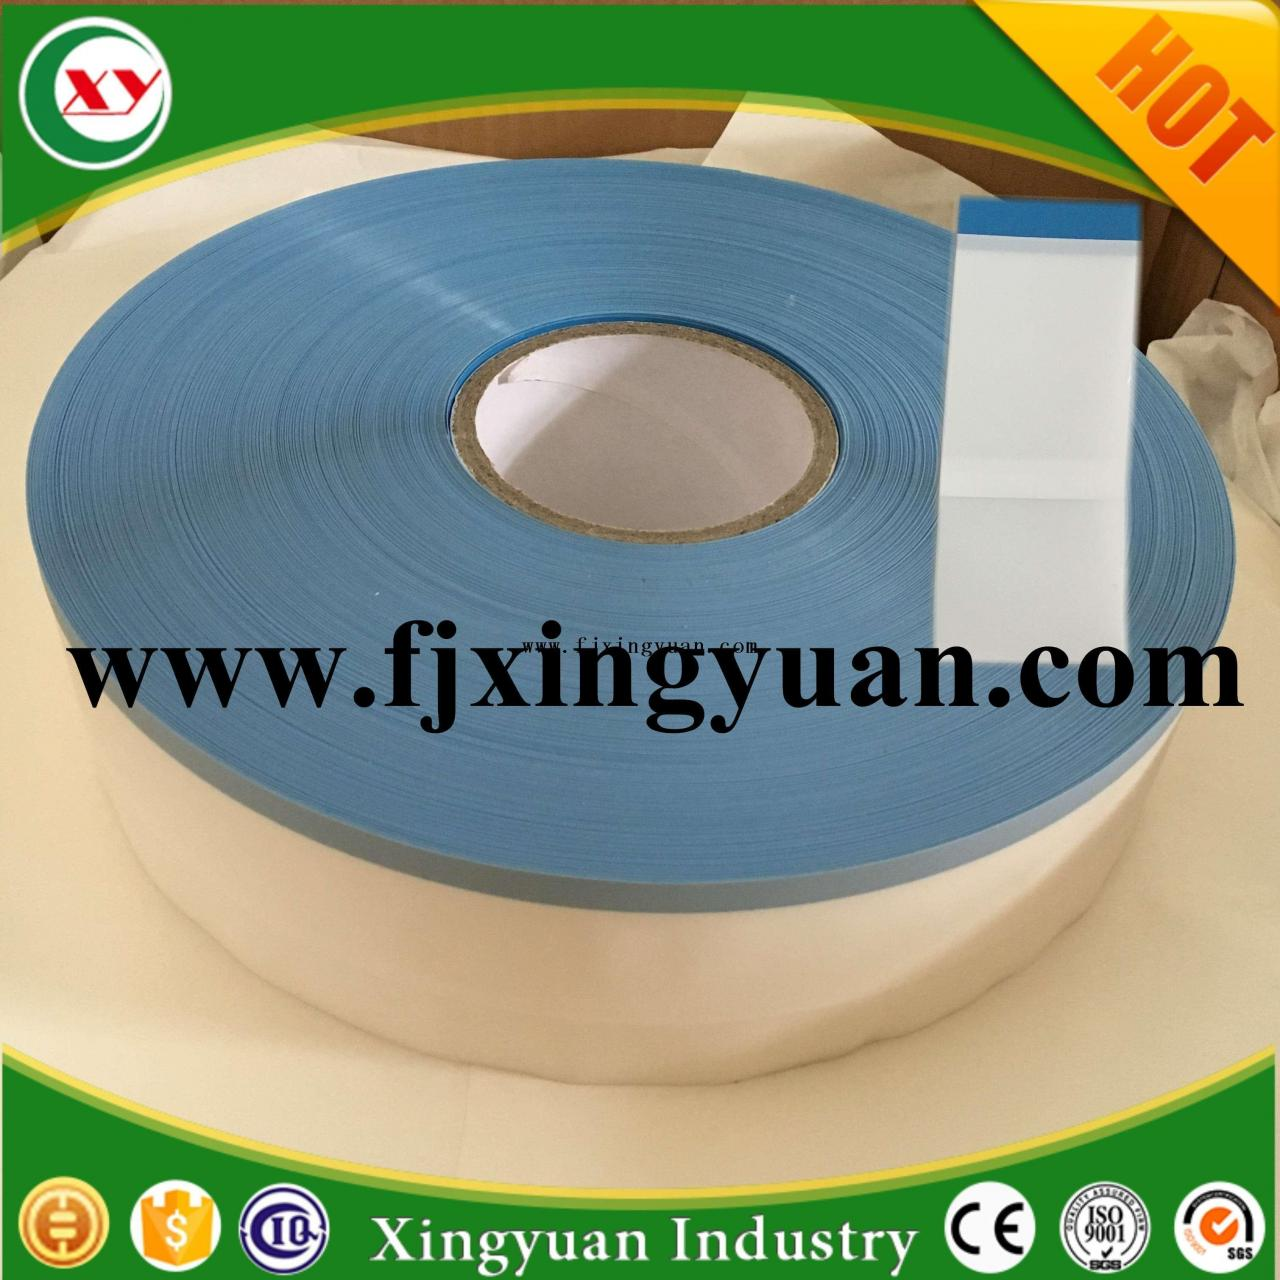 Wholesale pp tape for adult diapers from china suppliers